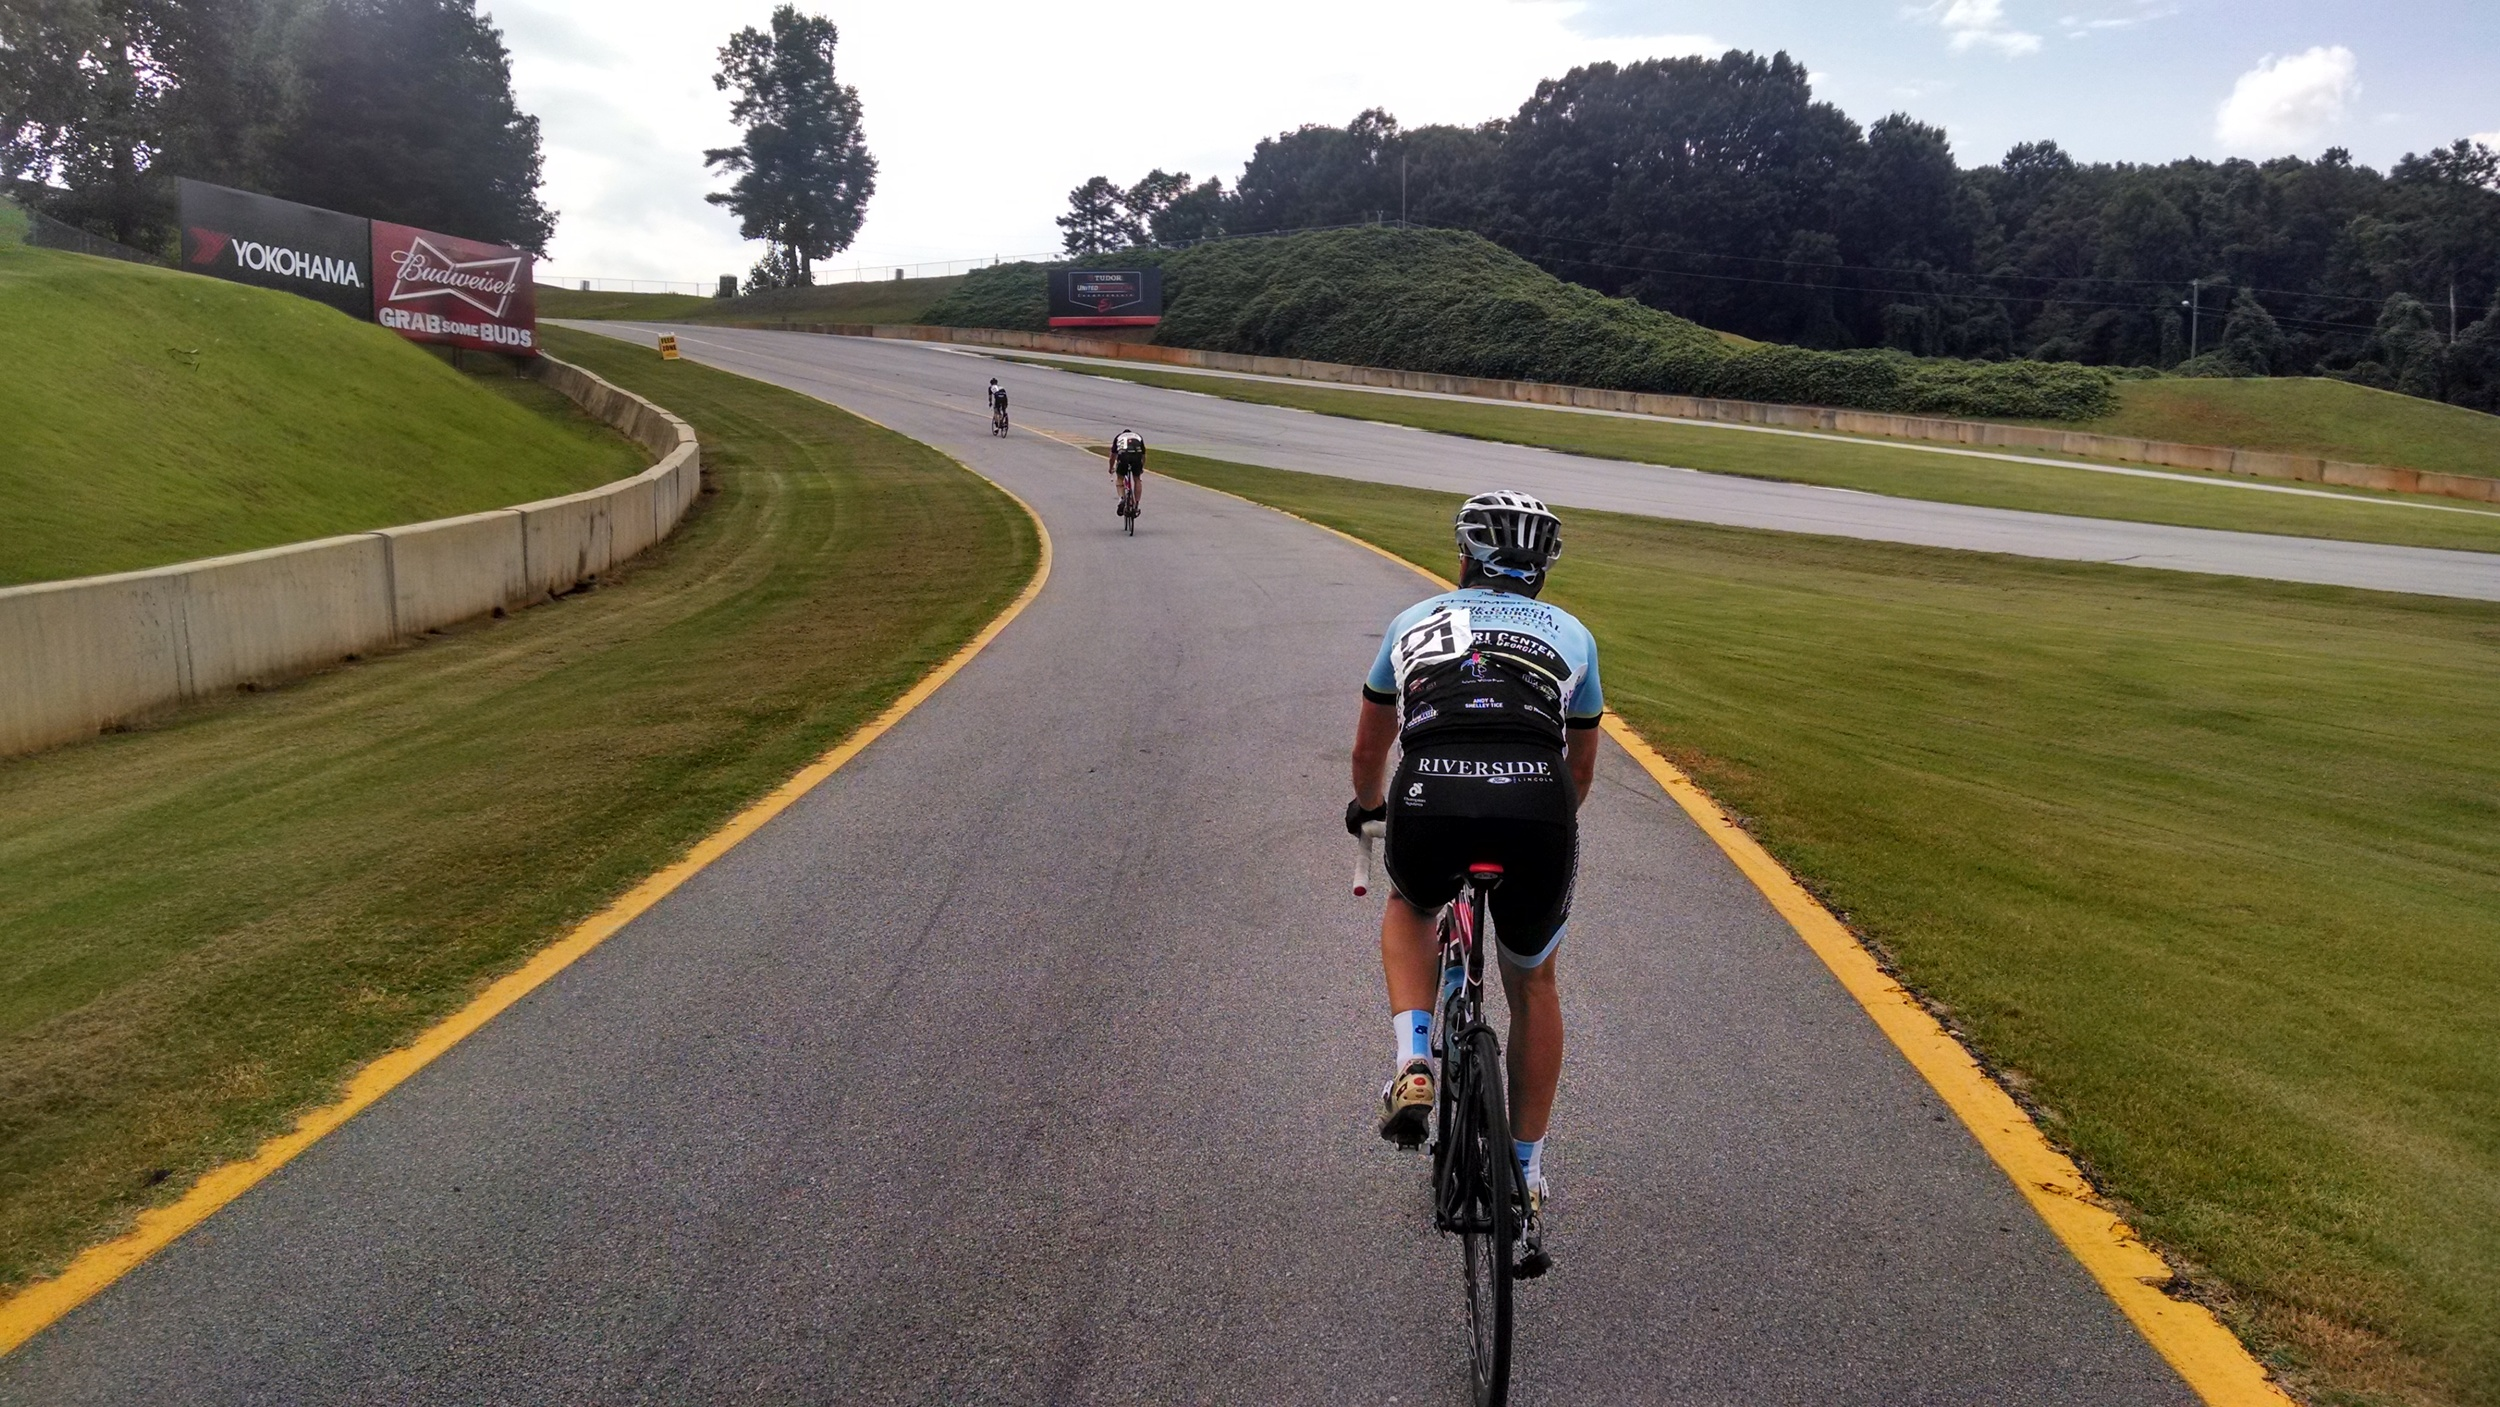 Just after the start/finish line is the pit lane hill.